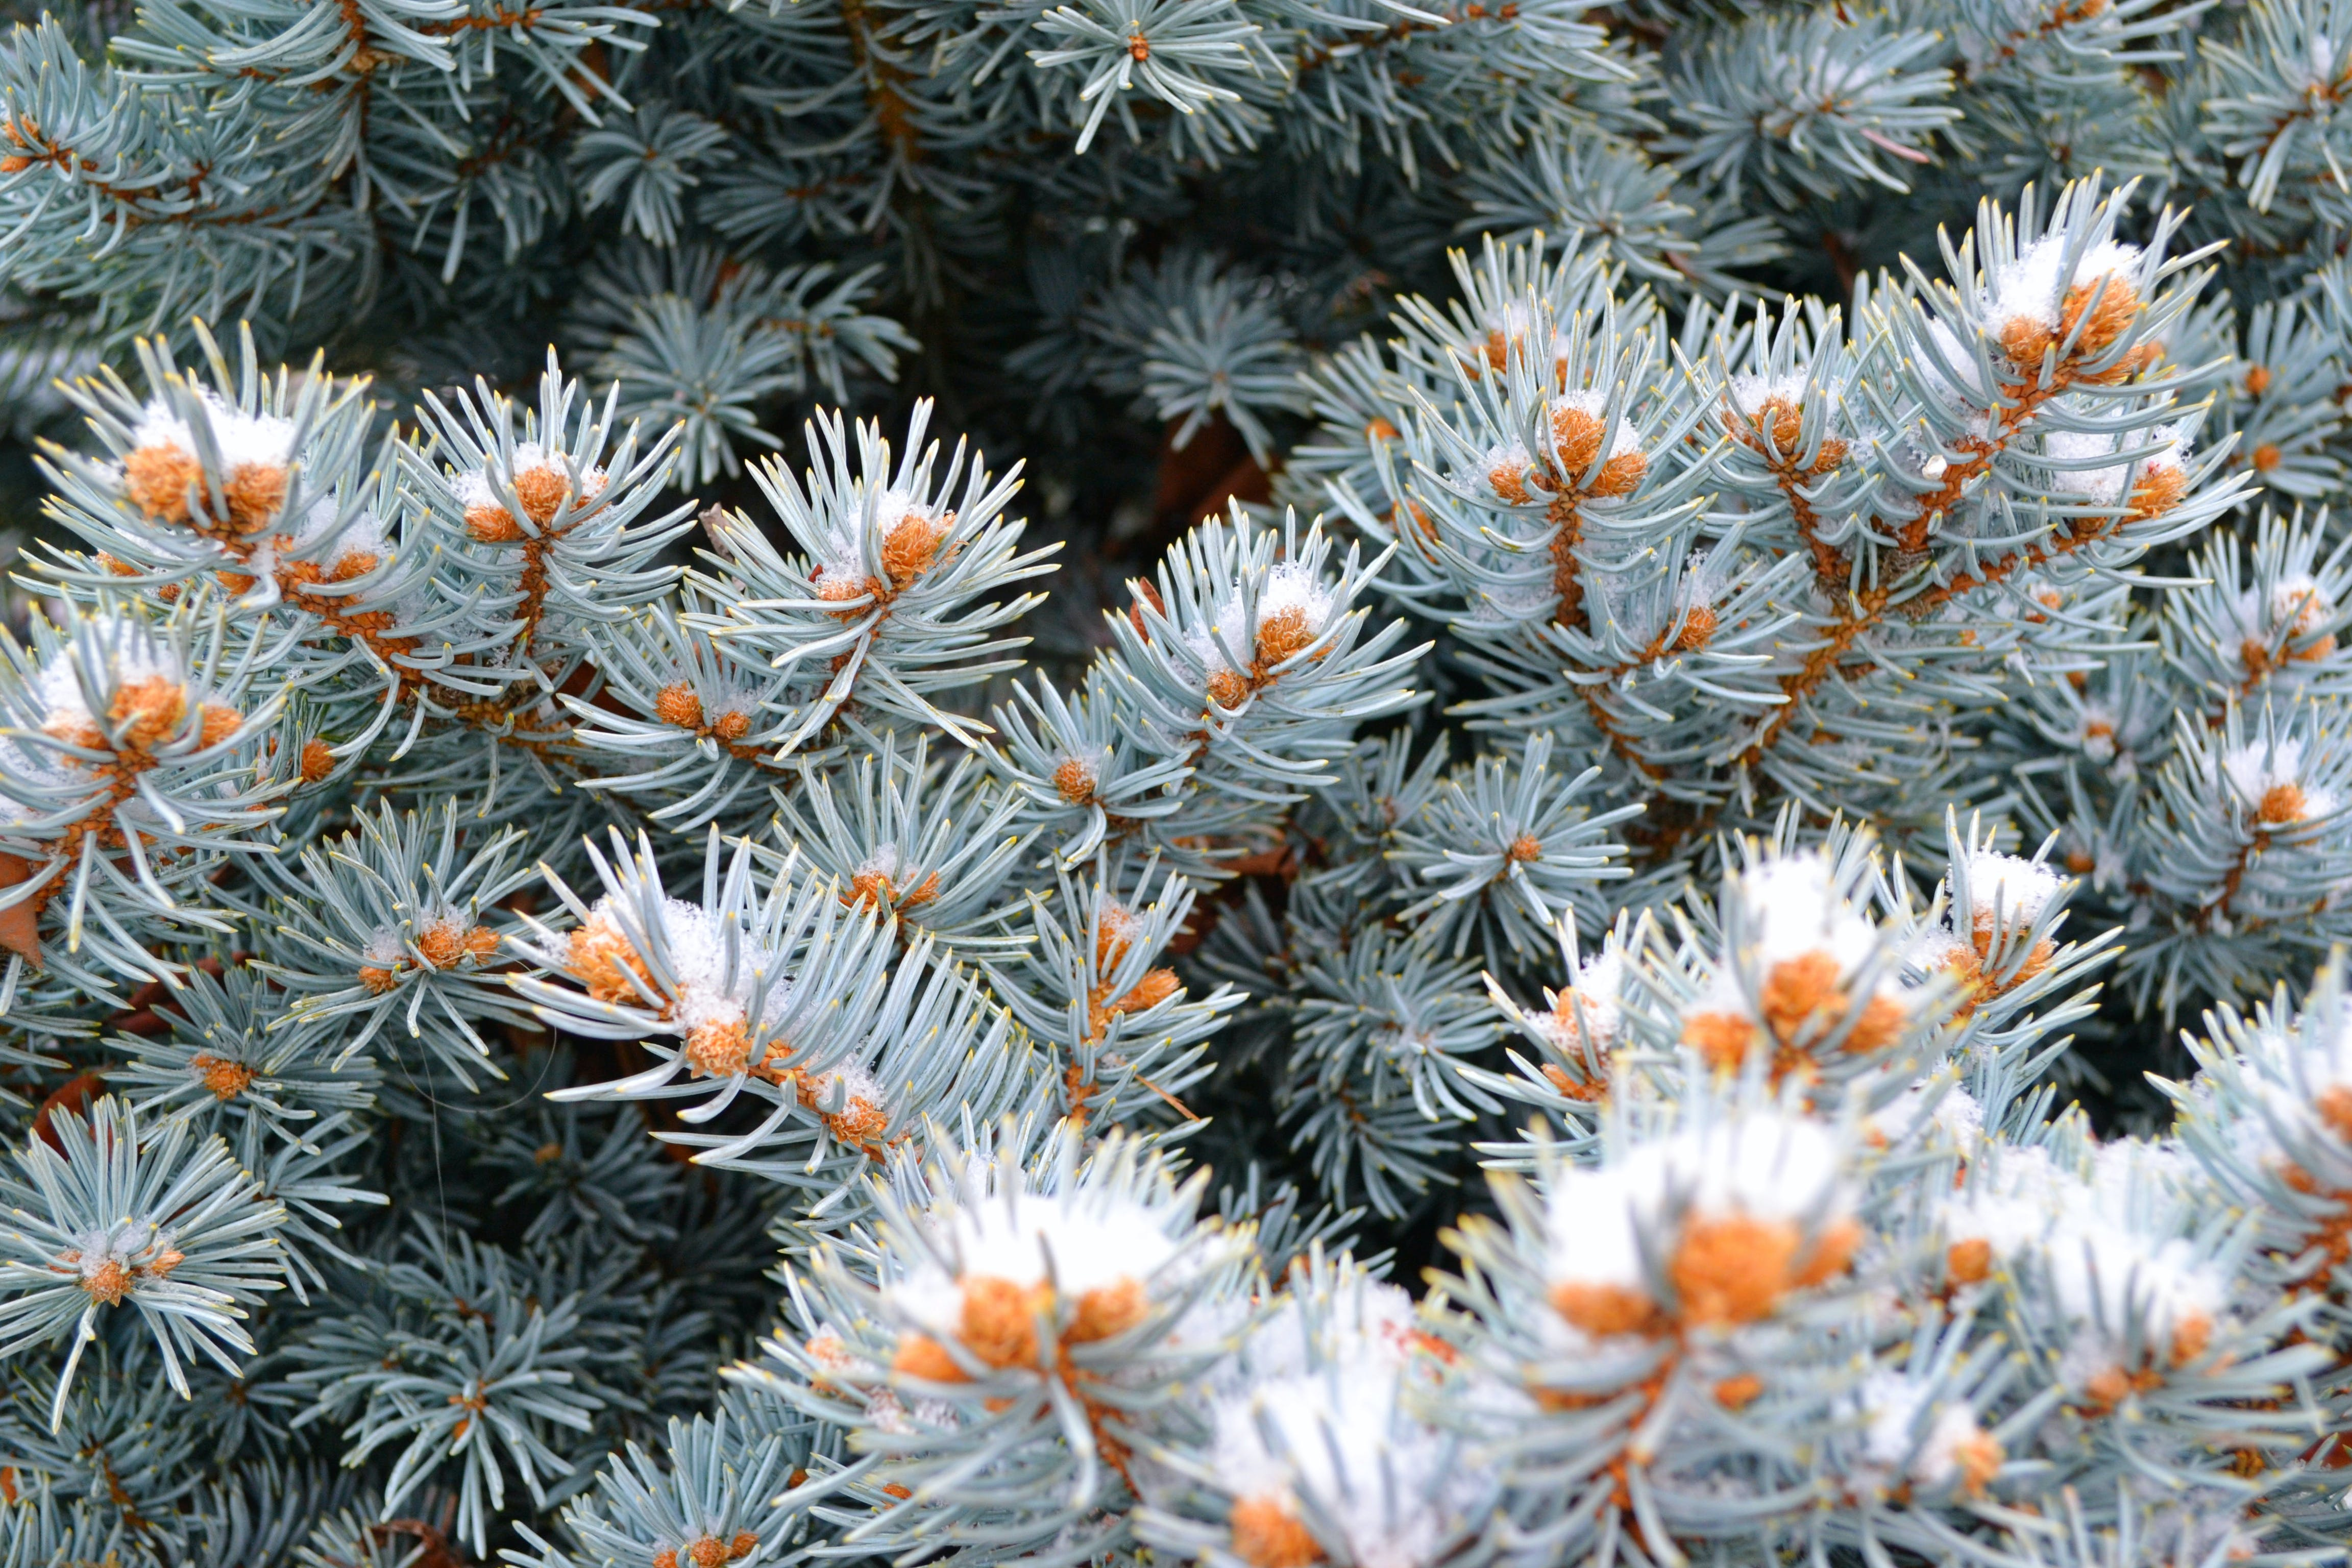 Gray-and-orange Plants in Closeup Photography